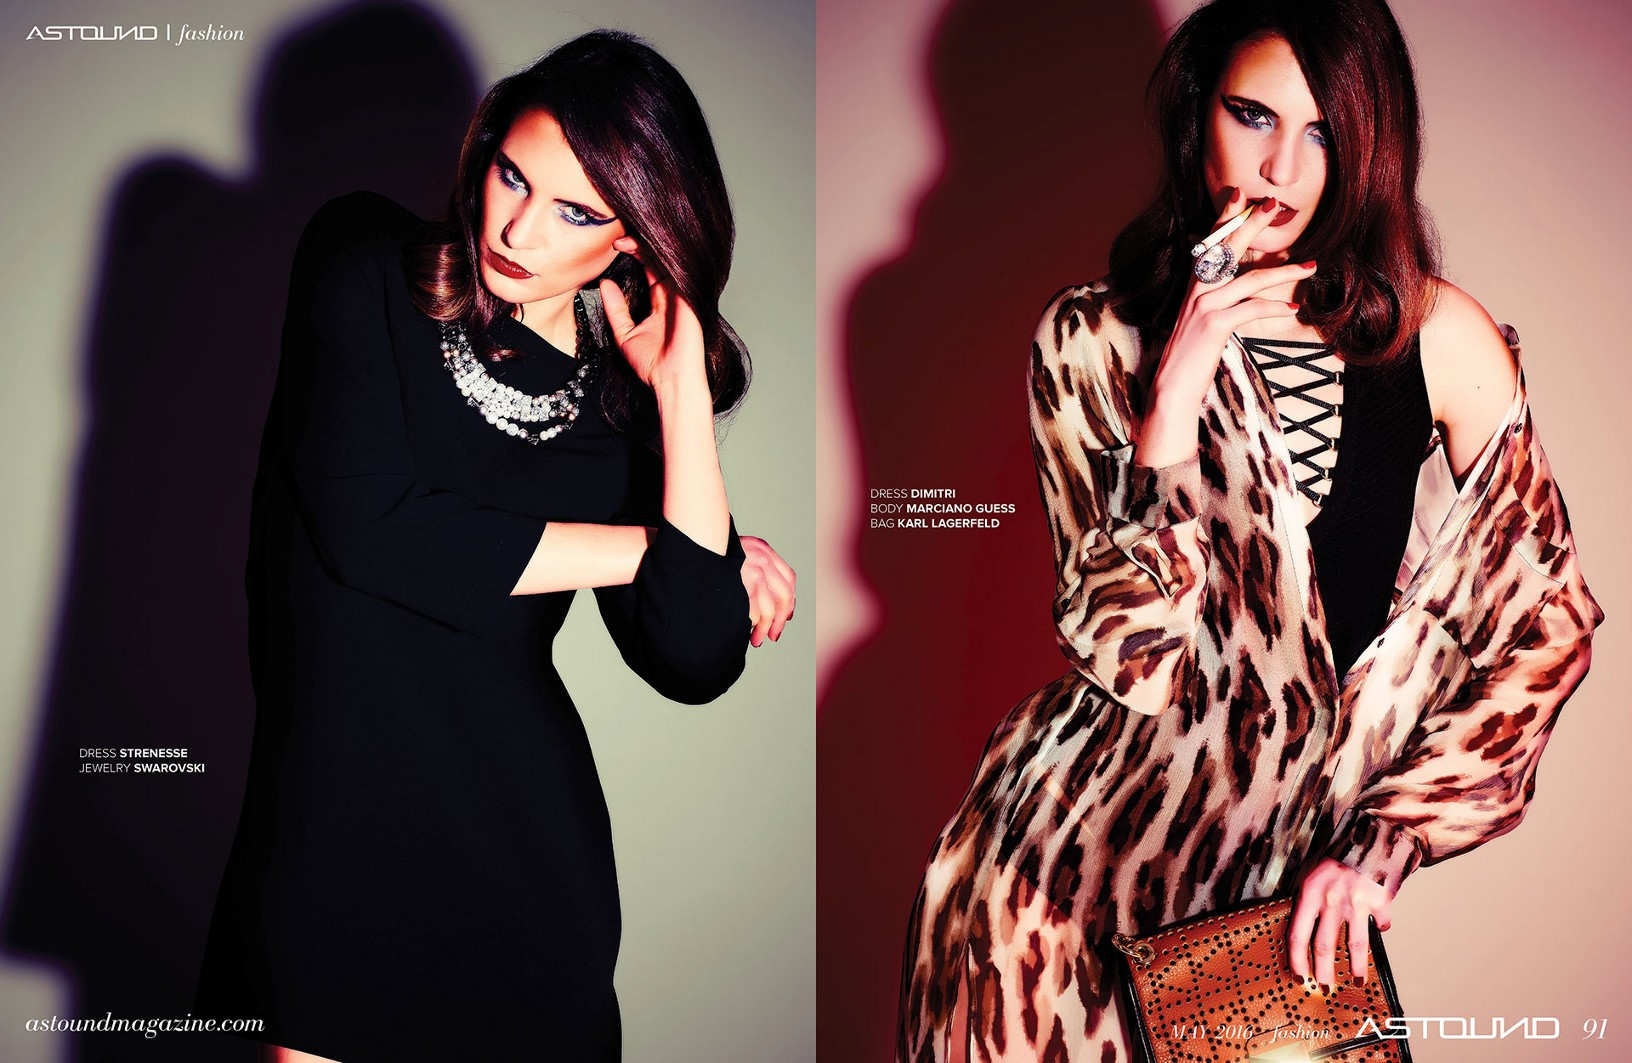 Fashion Story for Astound Magazine